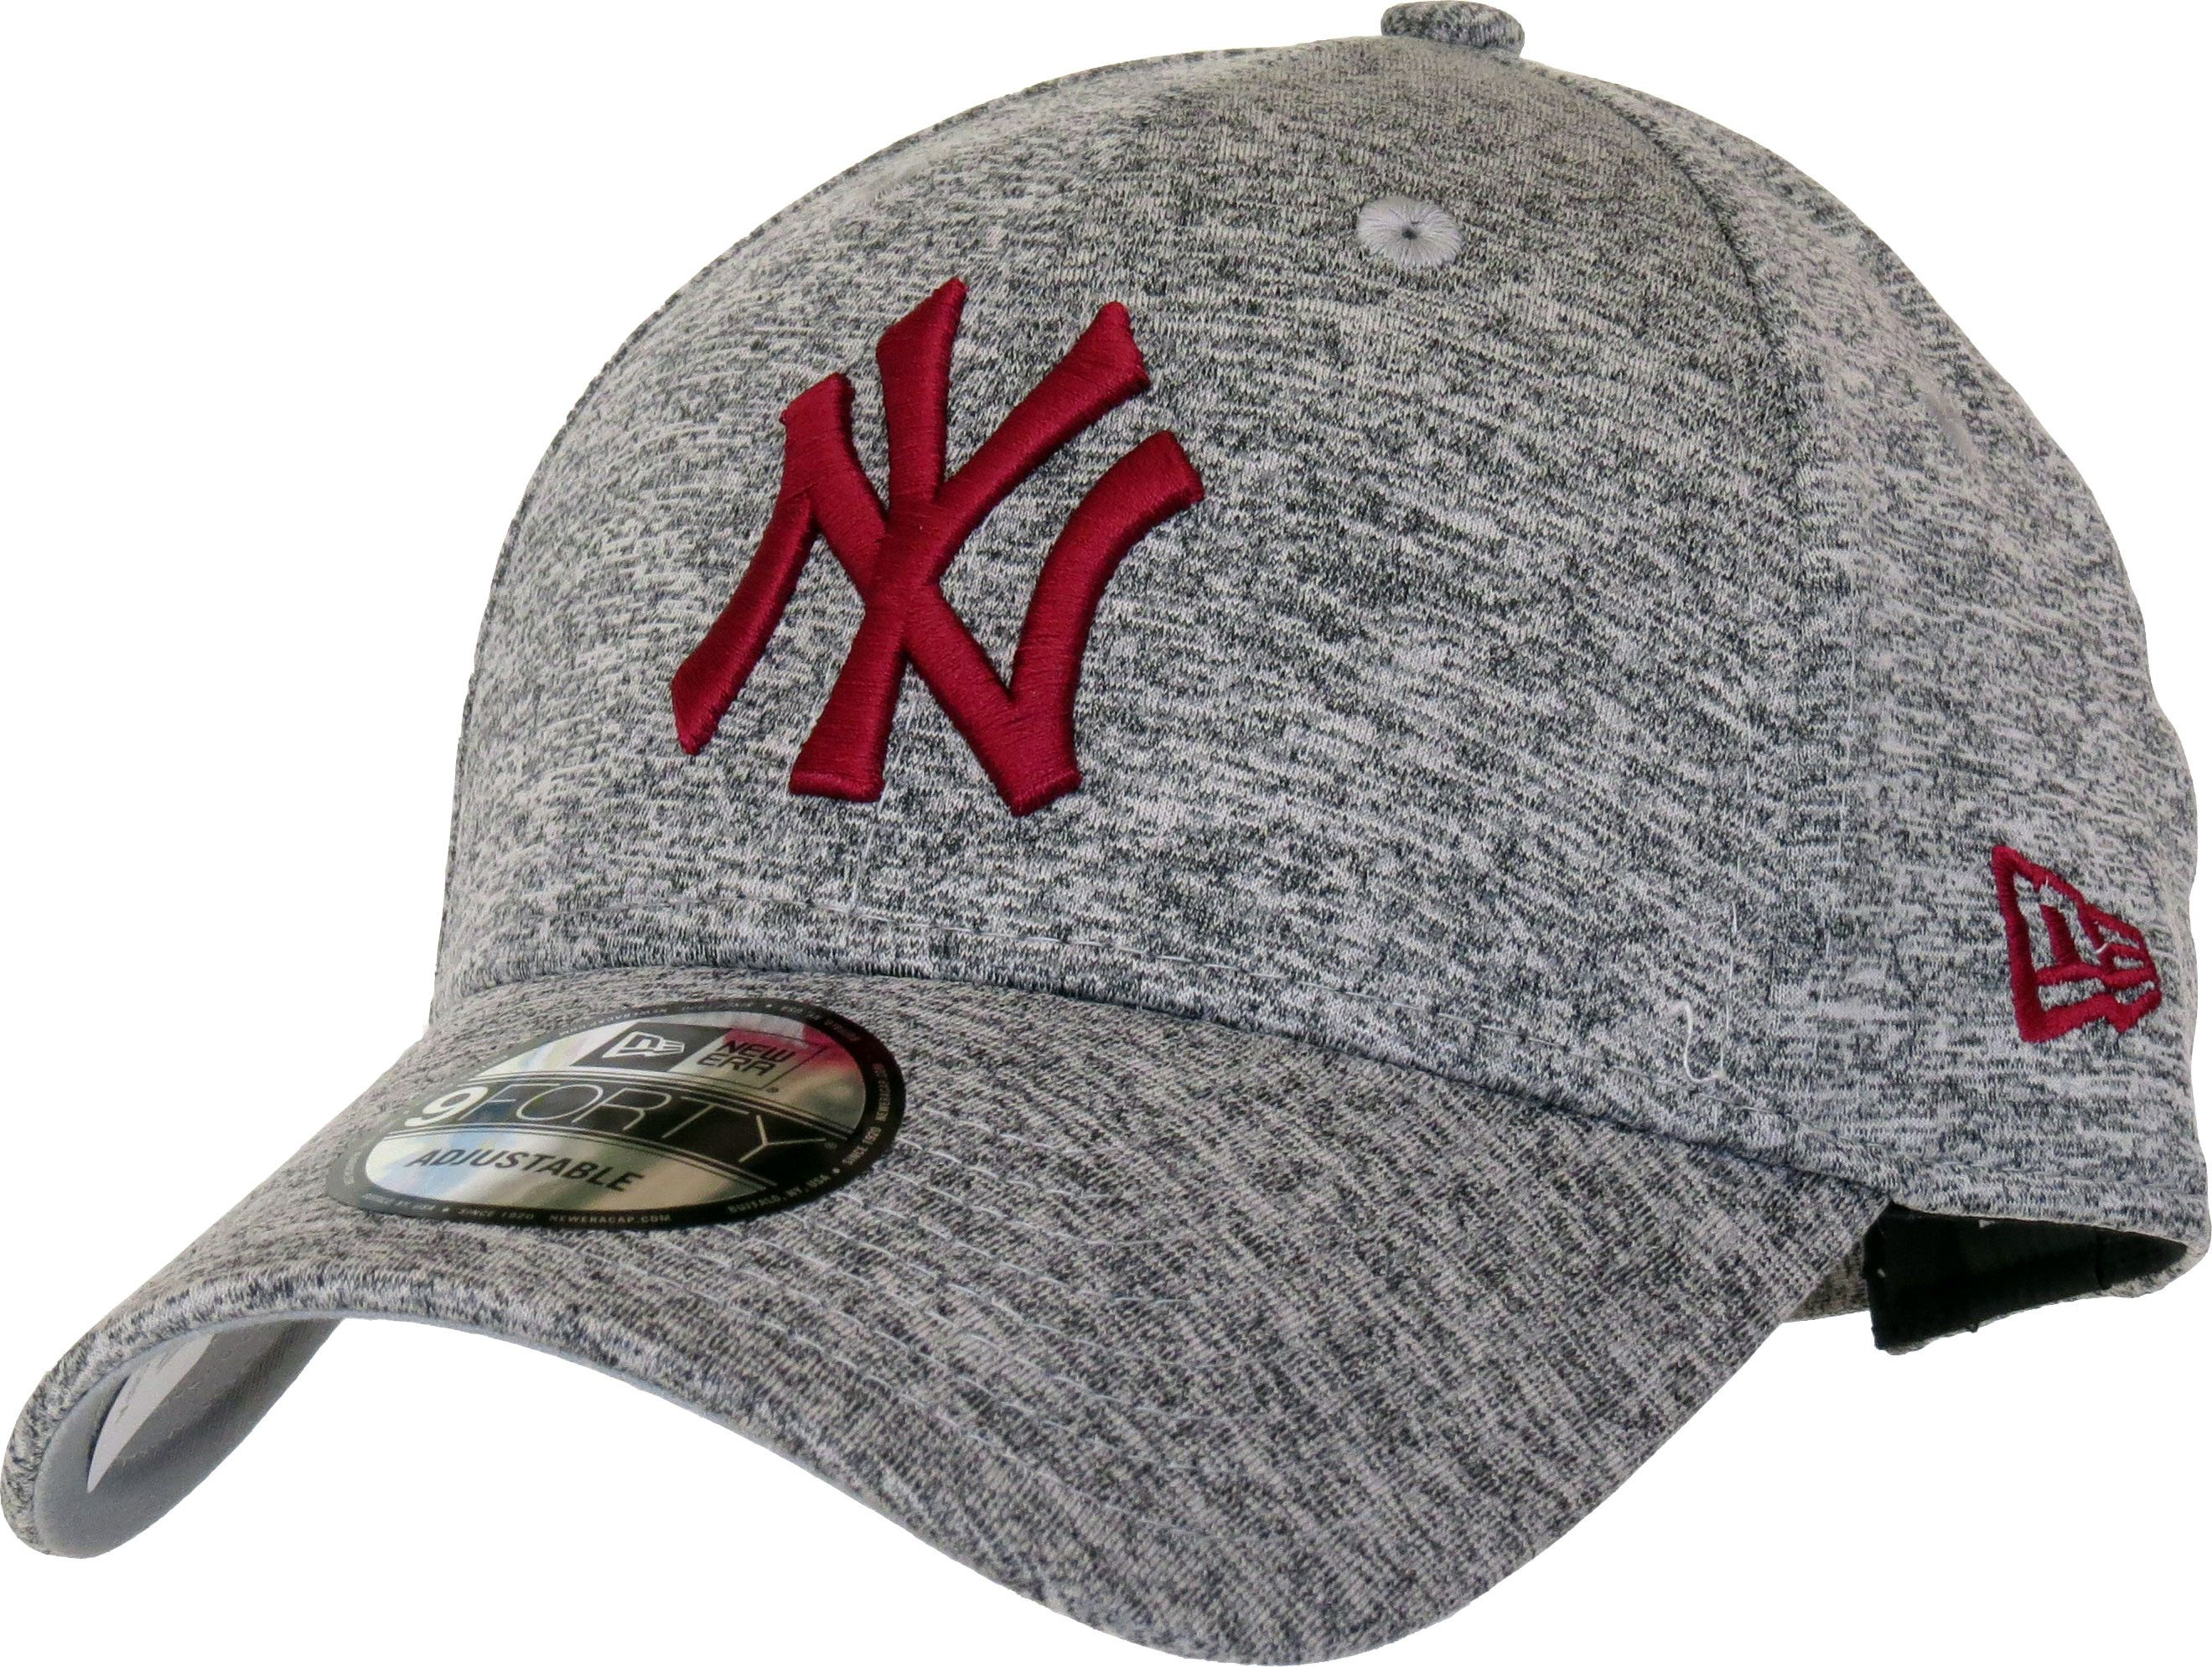 e72c27aa New Era 9Forty New York Yankees Tech Jersey Adjustable Baseball Cap. Jersey  Grey with the